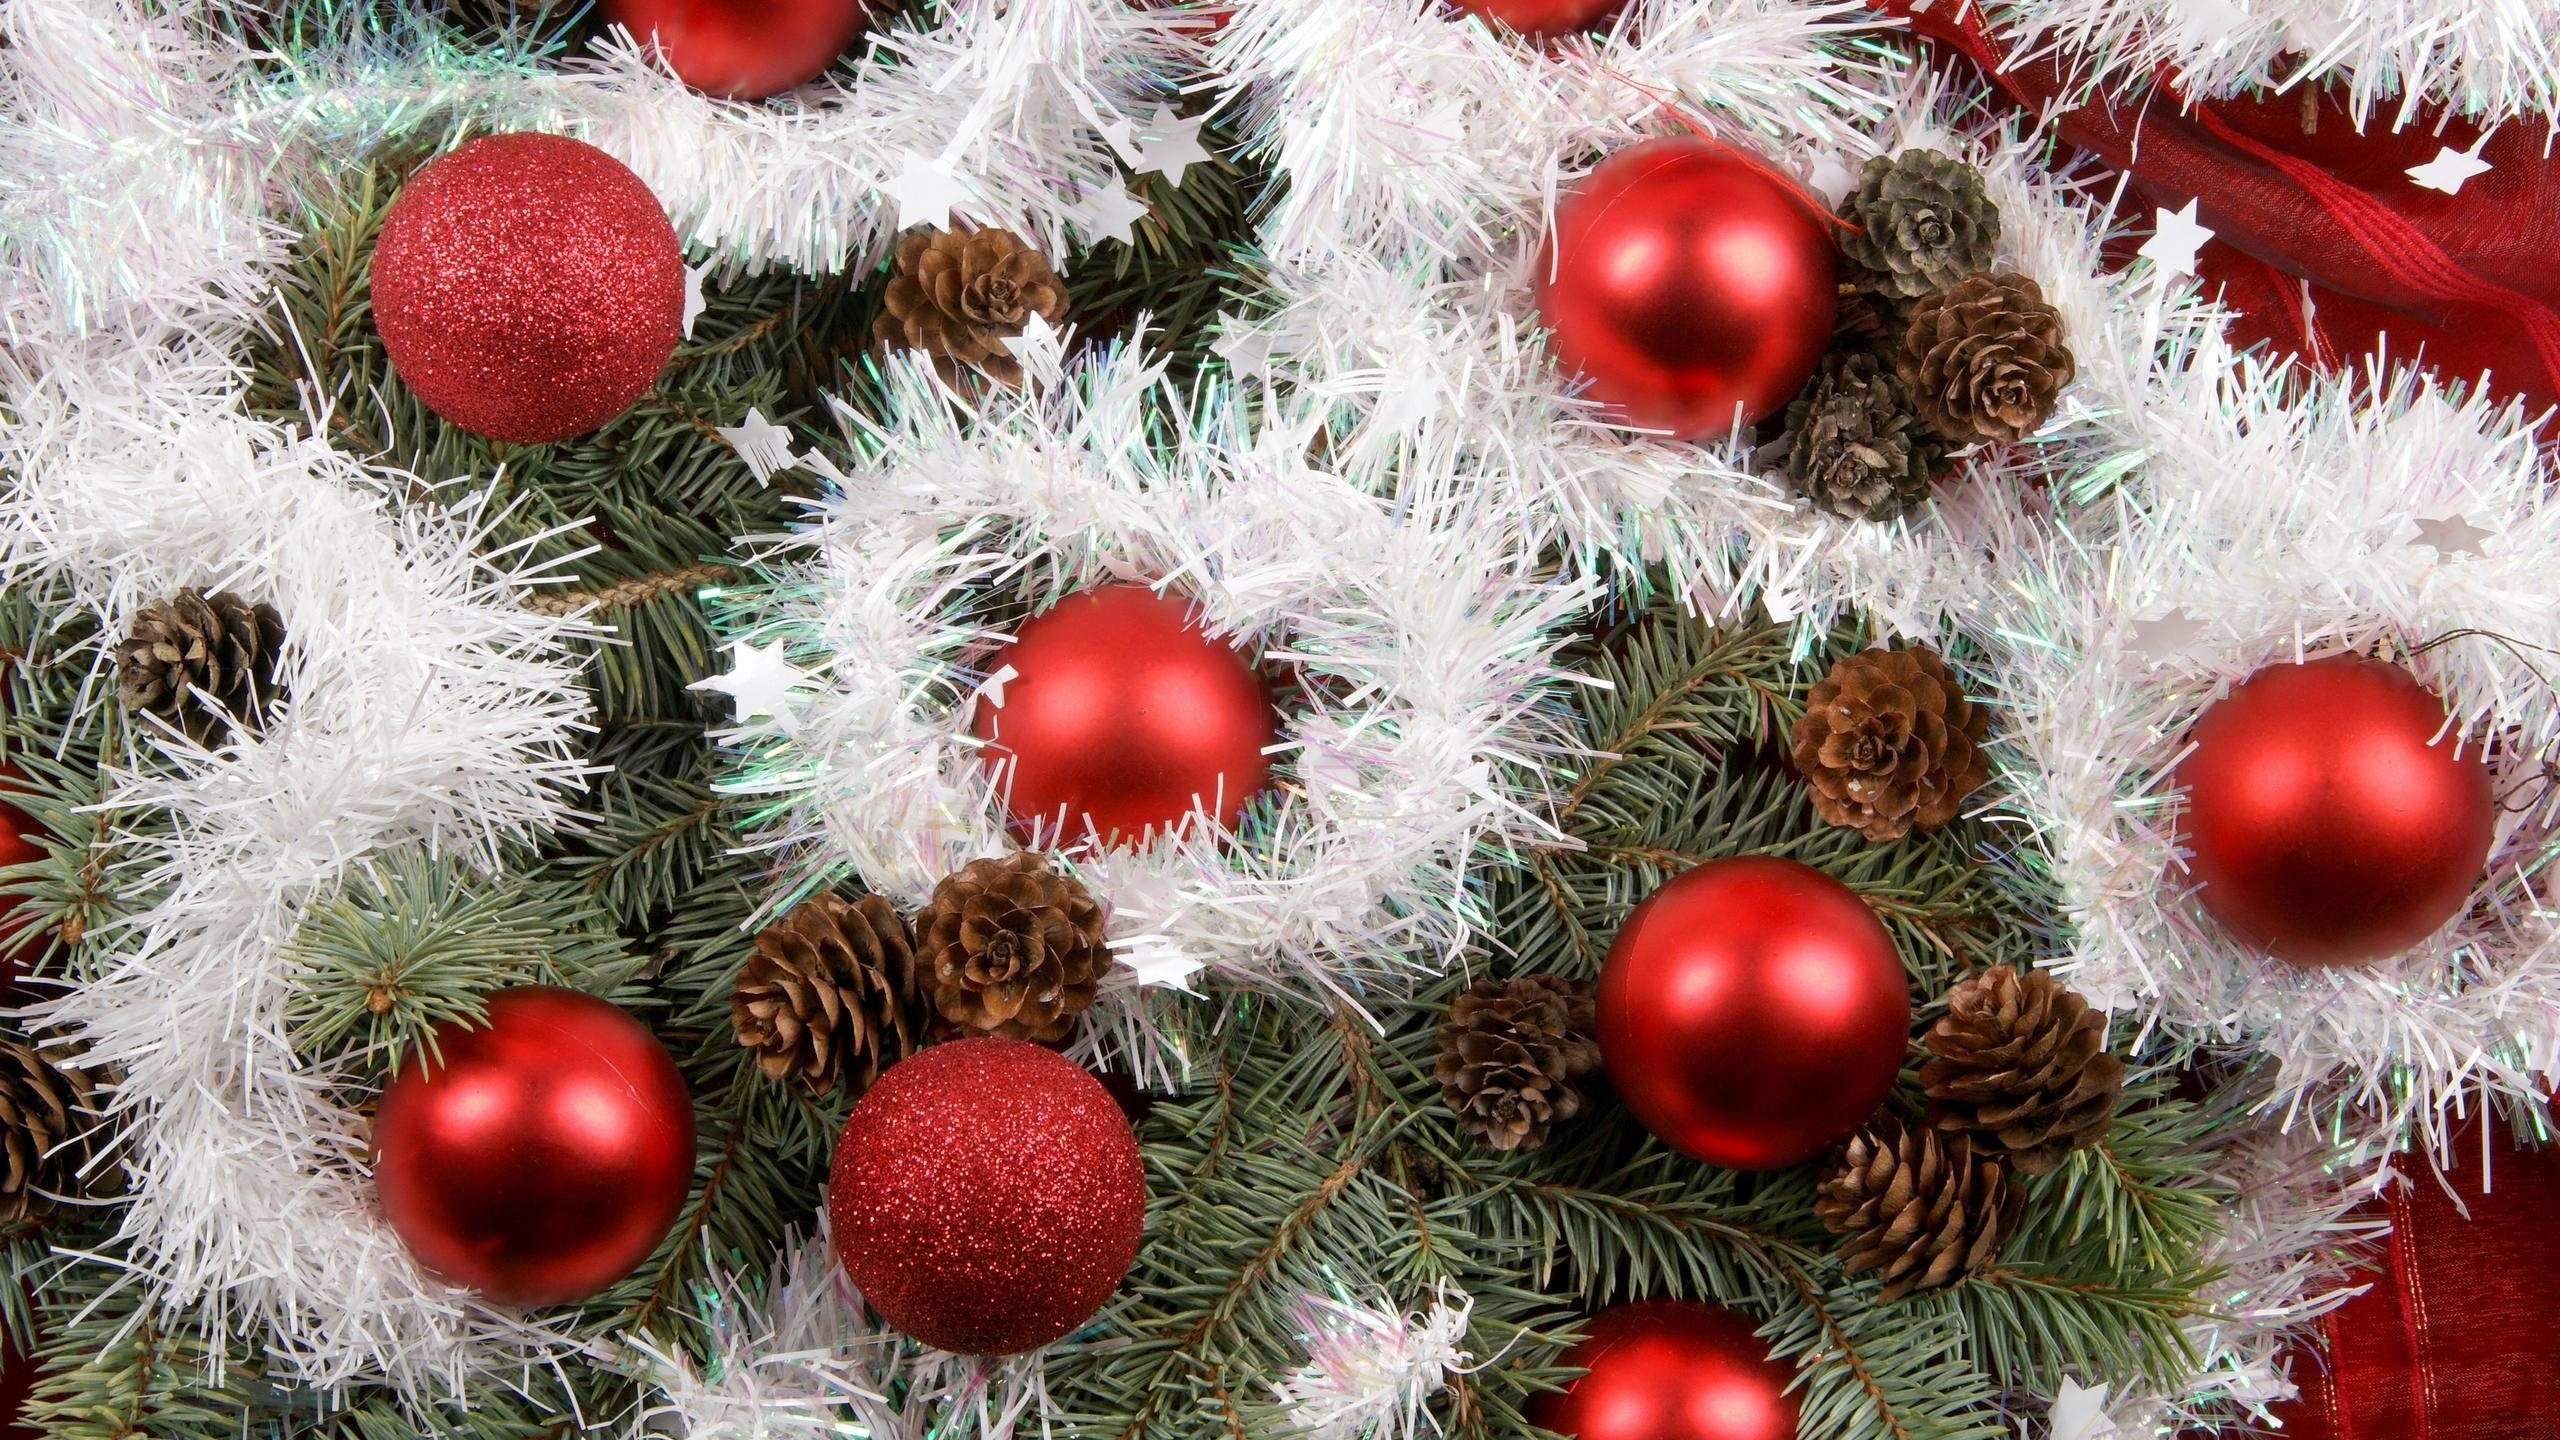 christmas wallpaper images - HD 1920×1200